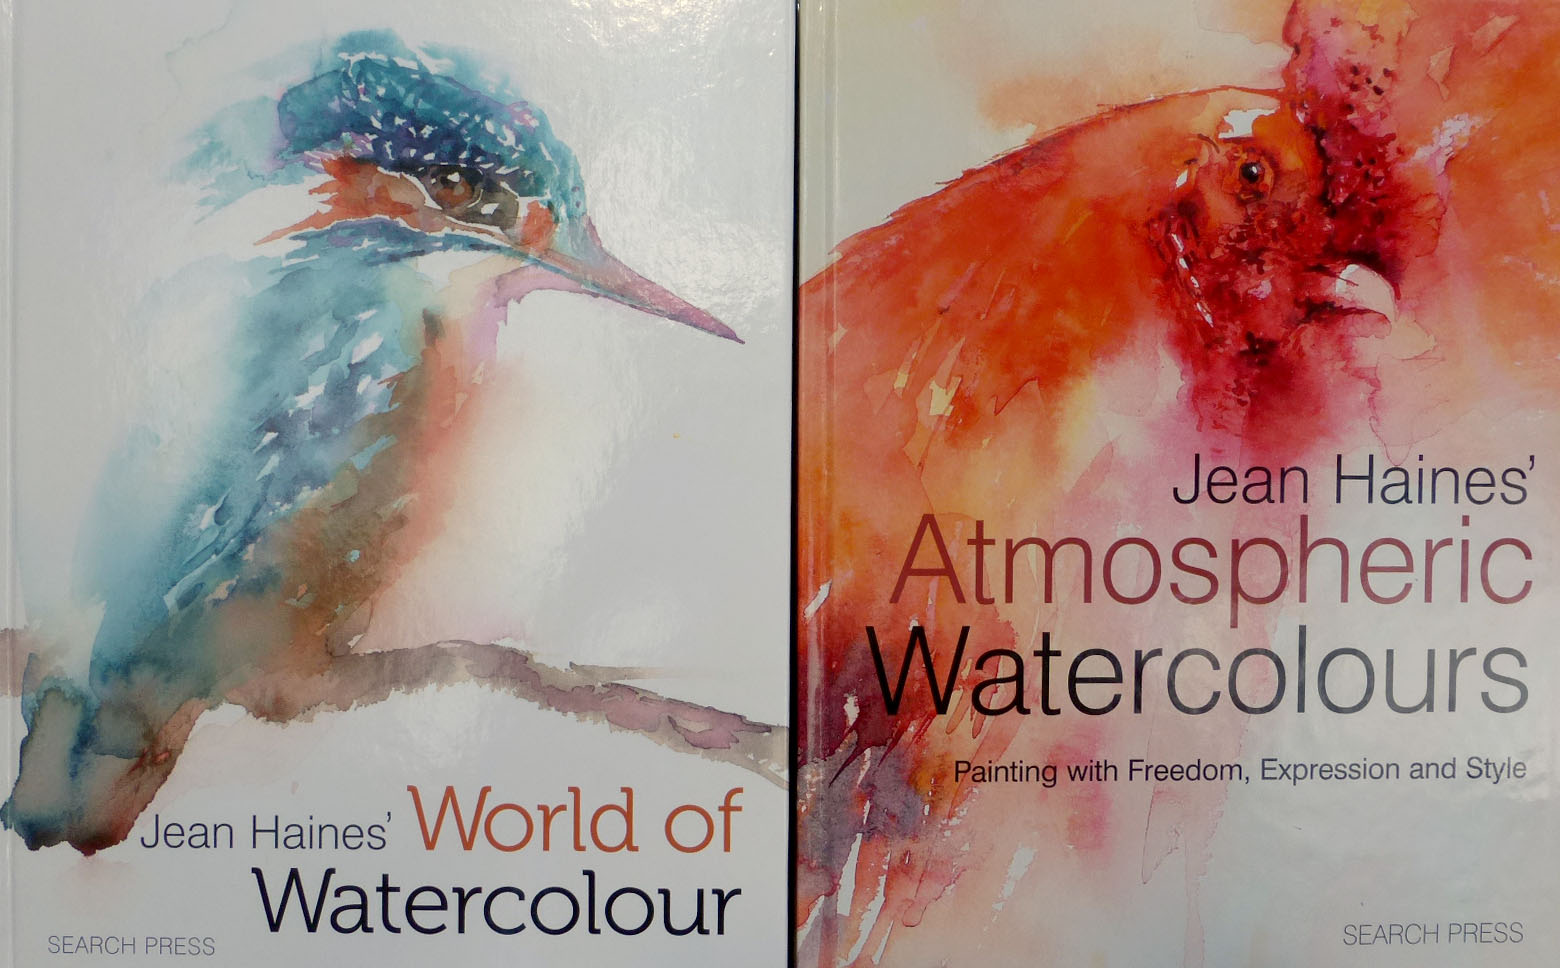 Watercolor books by search press - Jean Haines Books World Of Watercolor And Atmospheric Watercolors Are What I Ve Used To Try And Learn How To Paint Flowers More Loosely I Have A Looong